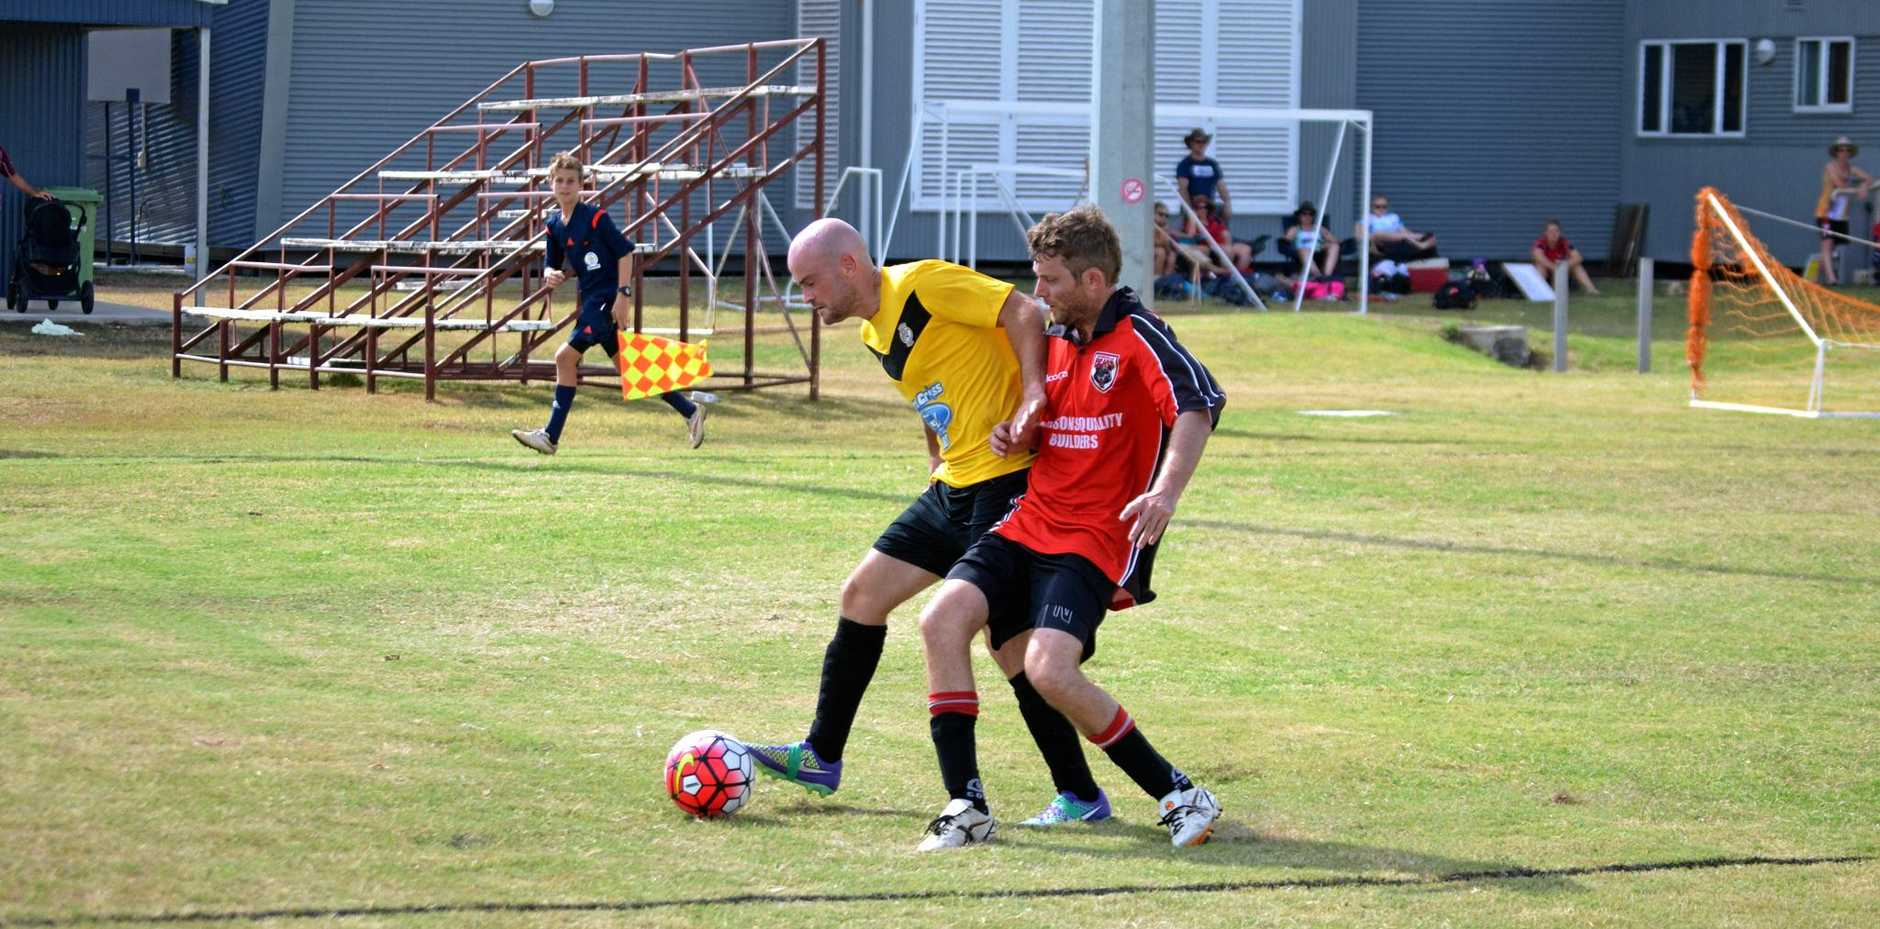 The Dalby Tigers have made a promising start.